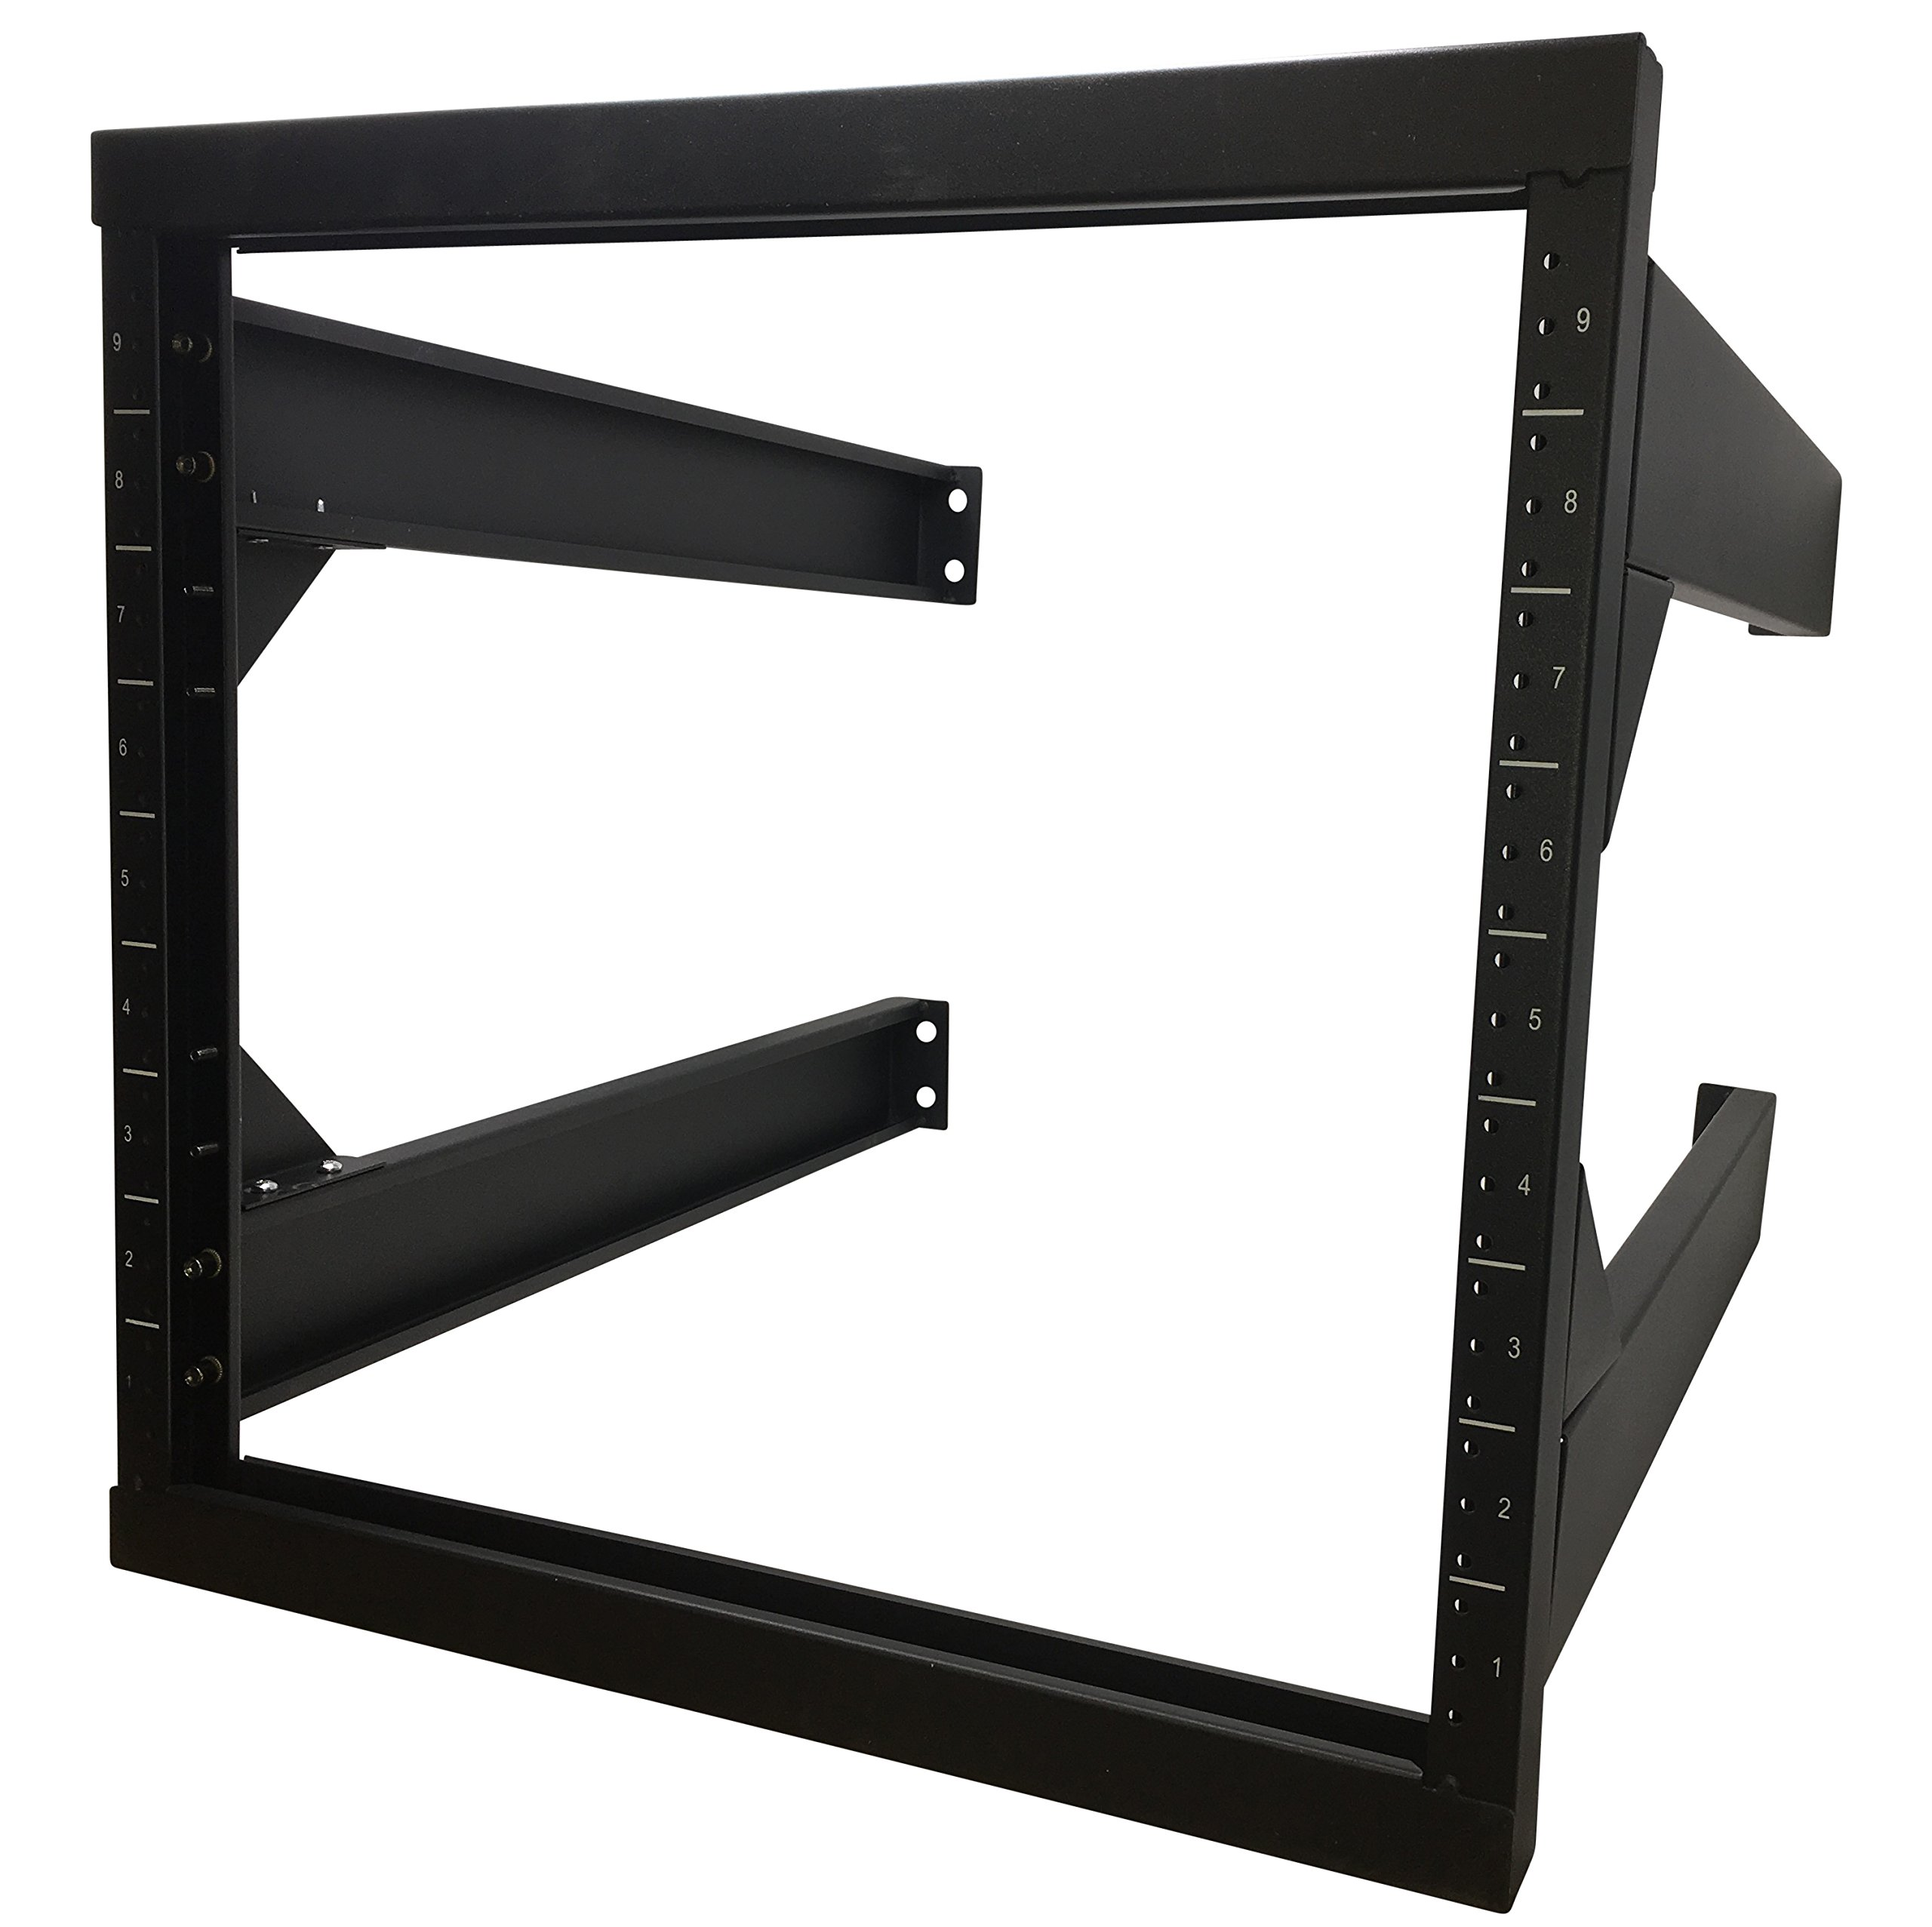 Kenuco 9U Wall Mount Open Frame Steel Network Equipment Rack New Version